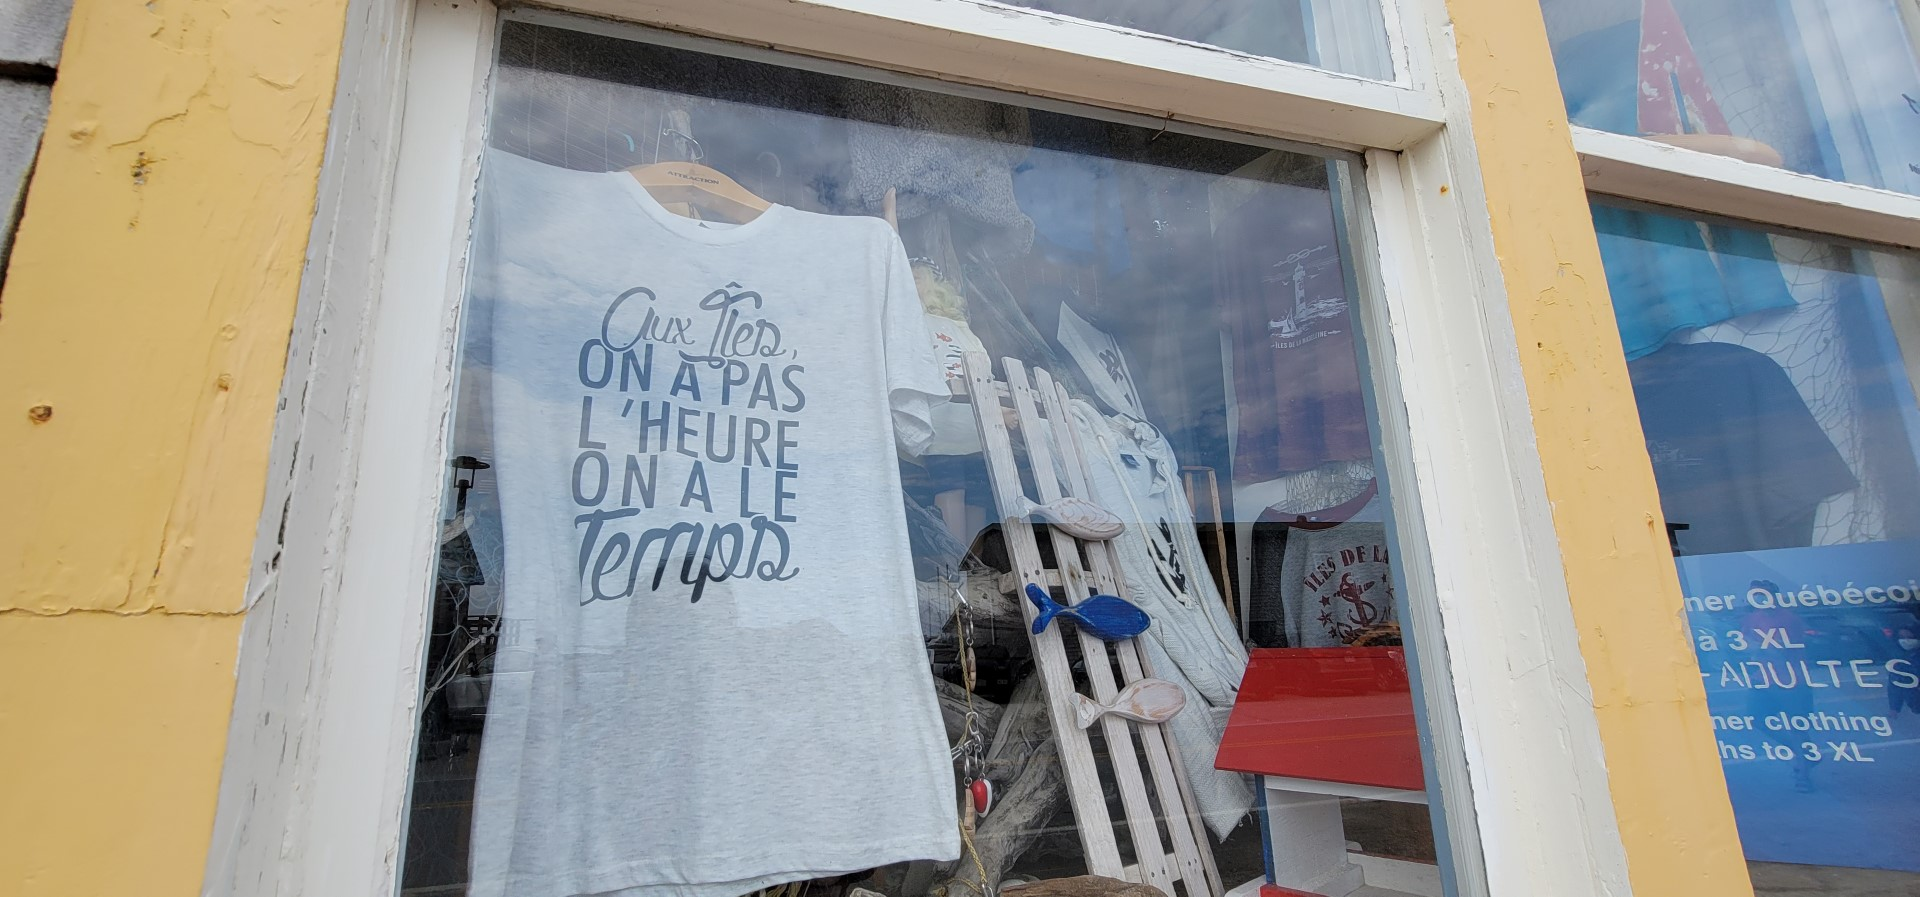 t shirt in window at La Grave